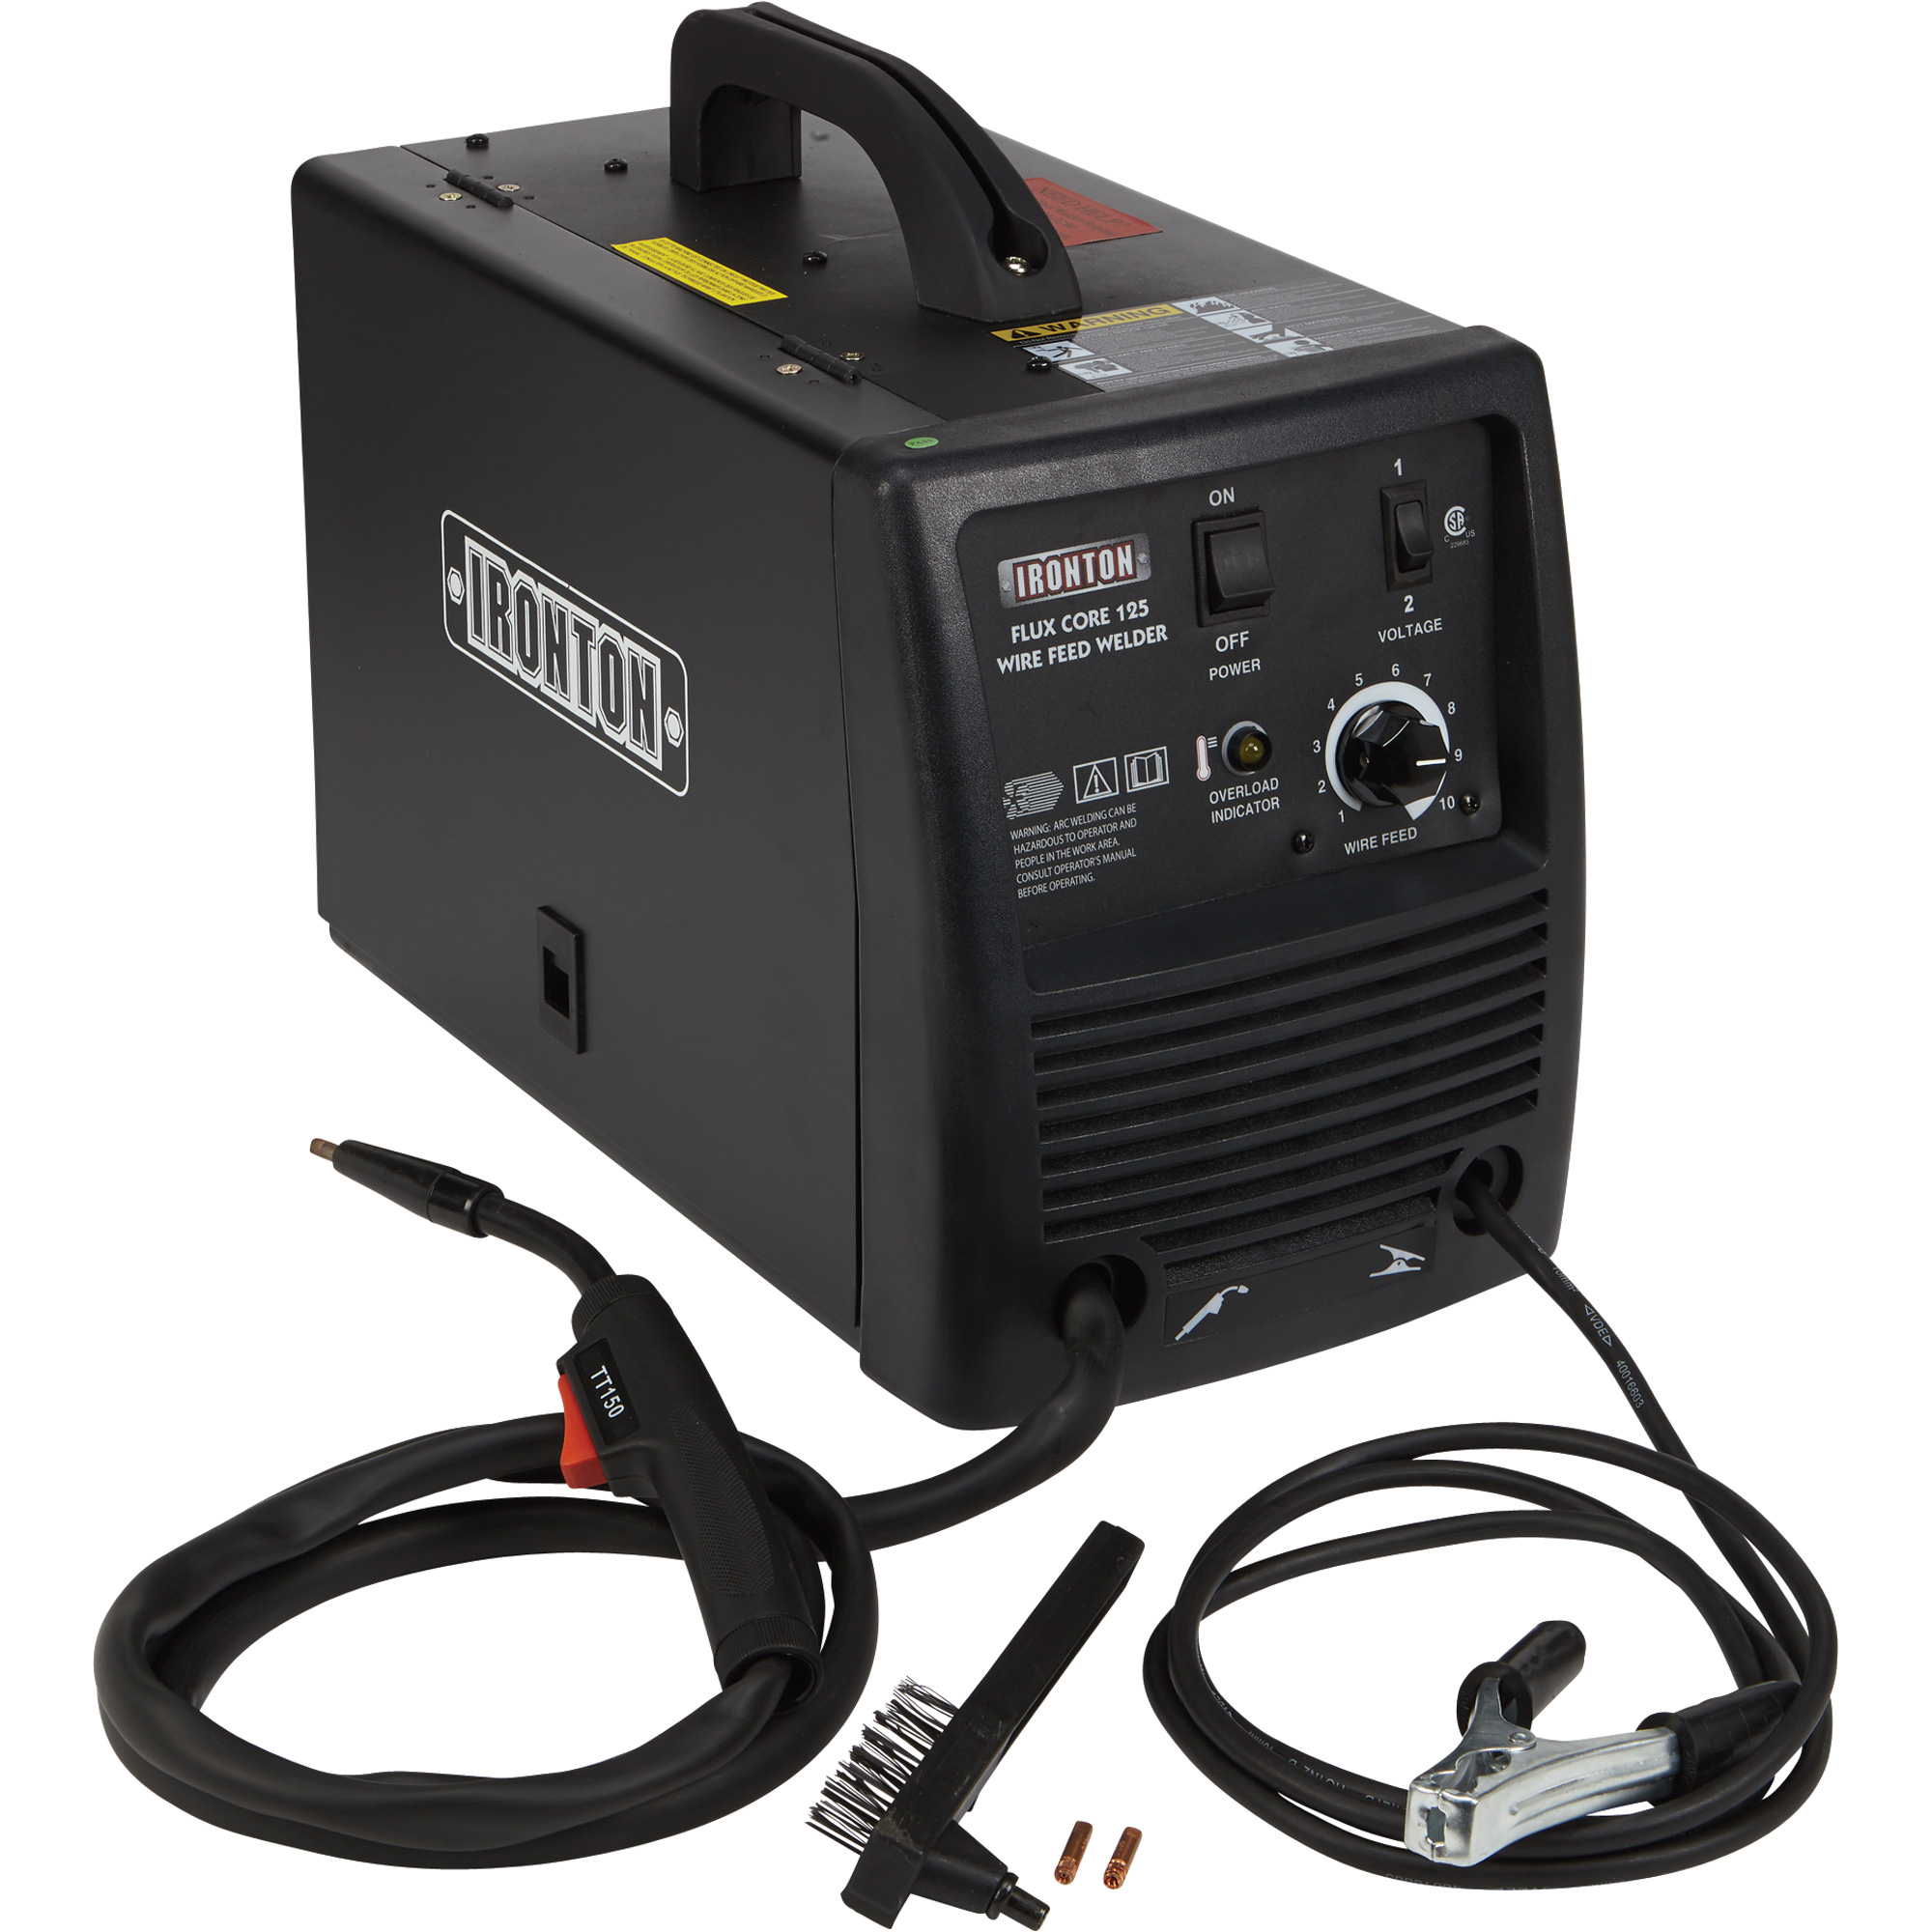 45433_2000x2000 ironton 125 flux core welder 115 volts, 125 amp mig flux core  at crackthecode.co